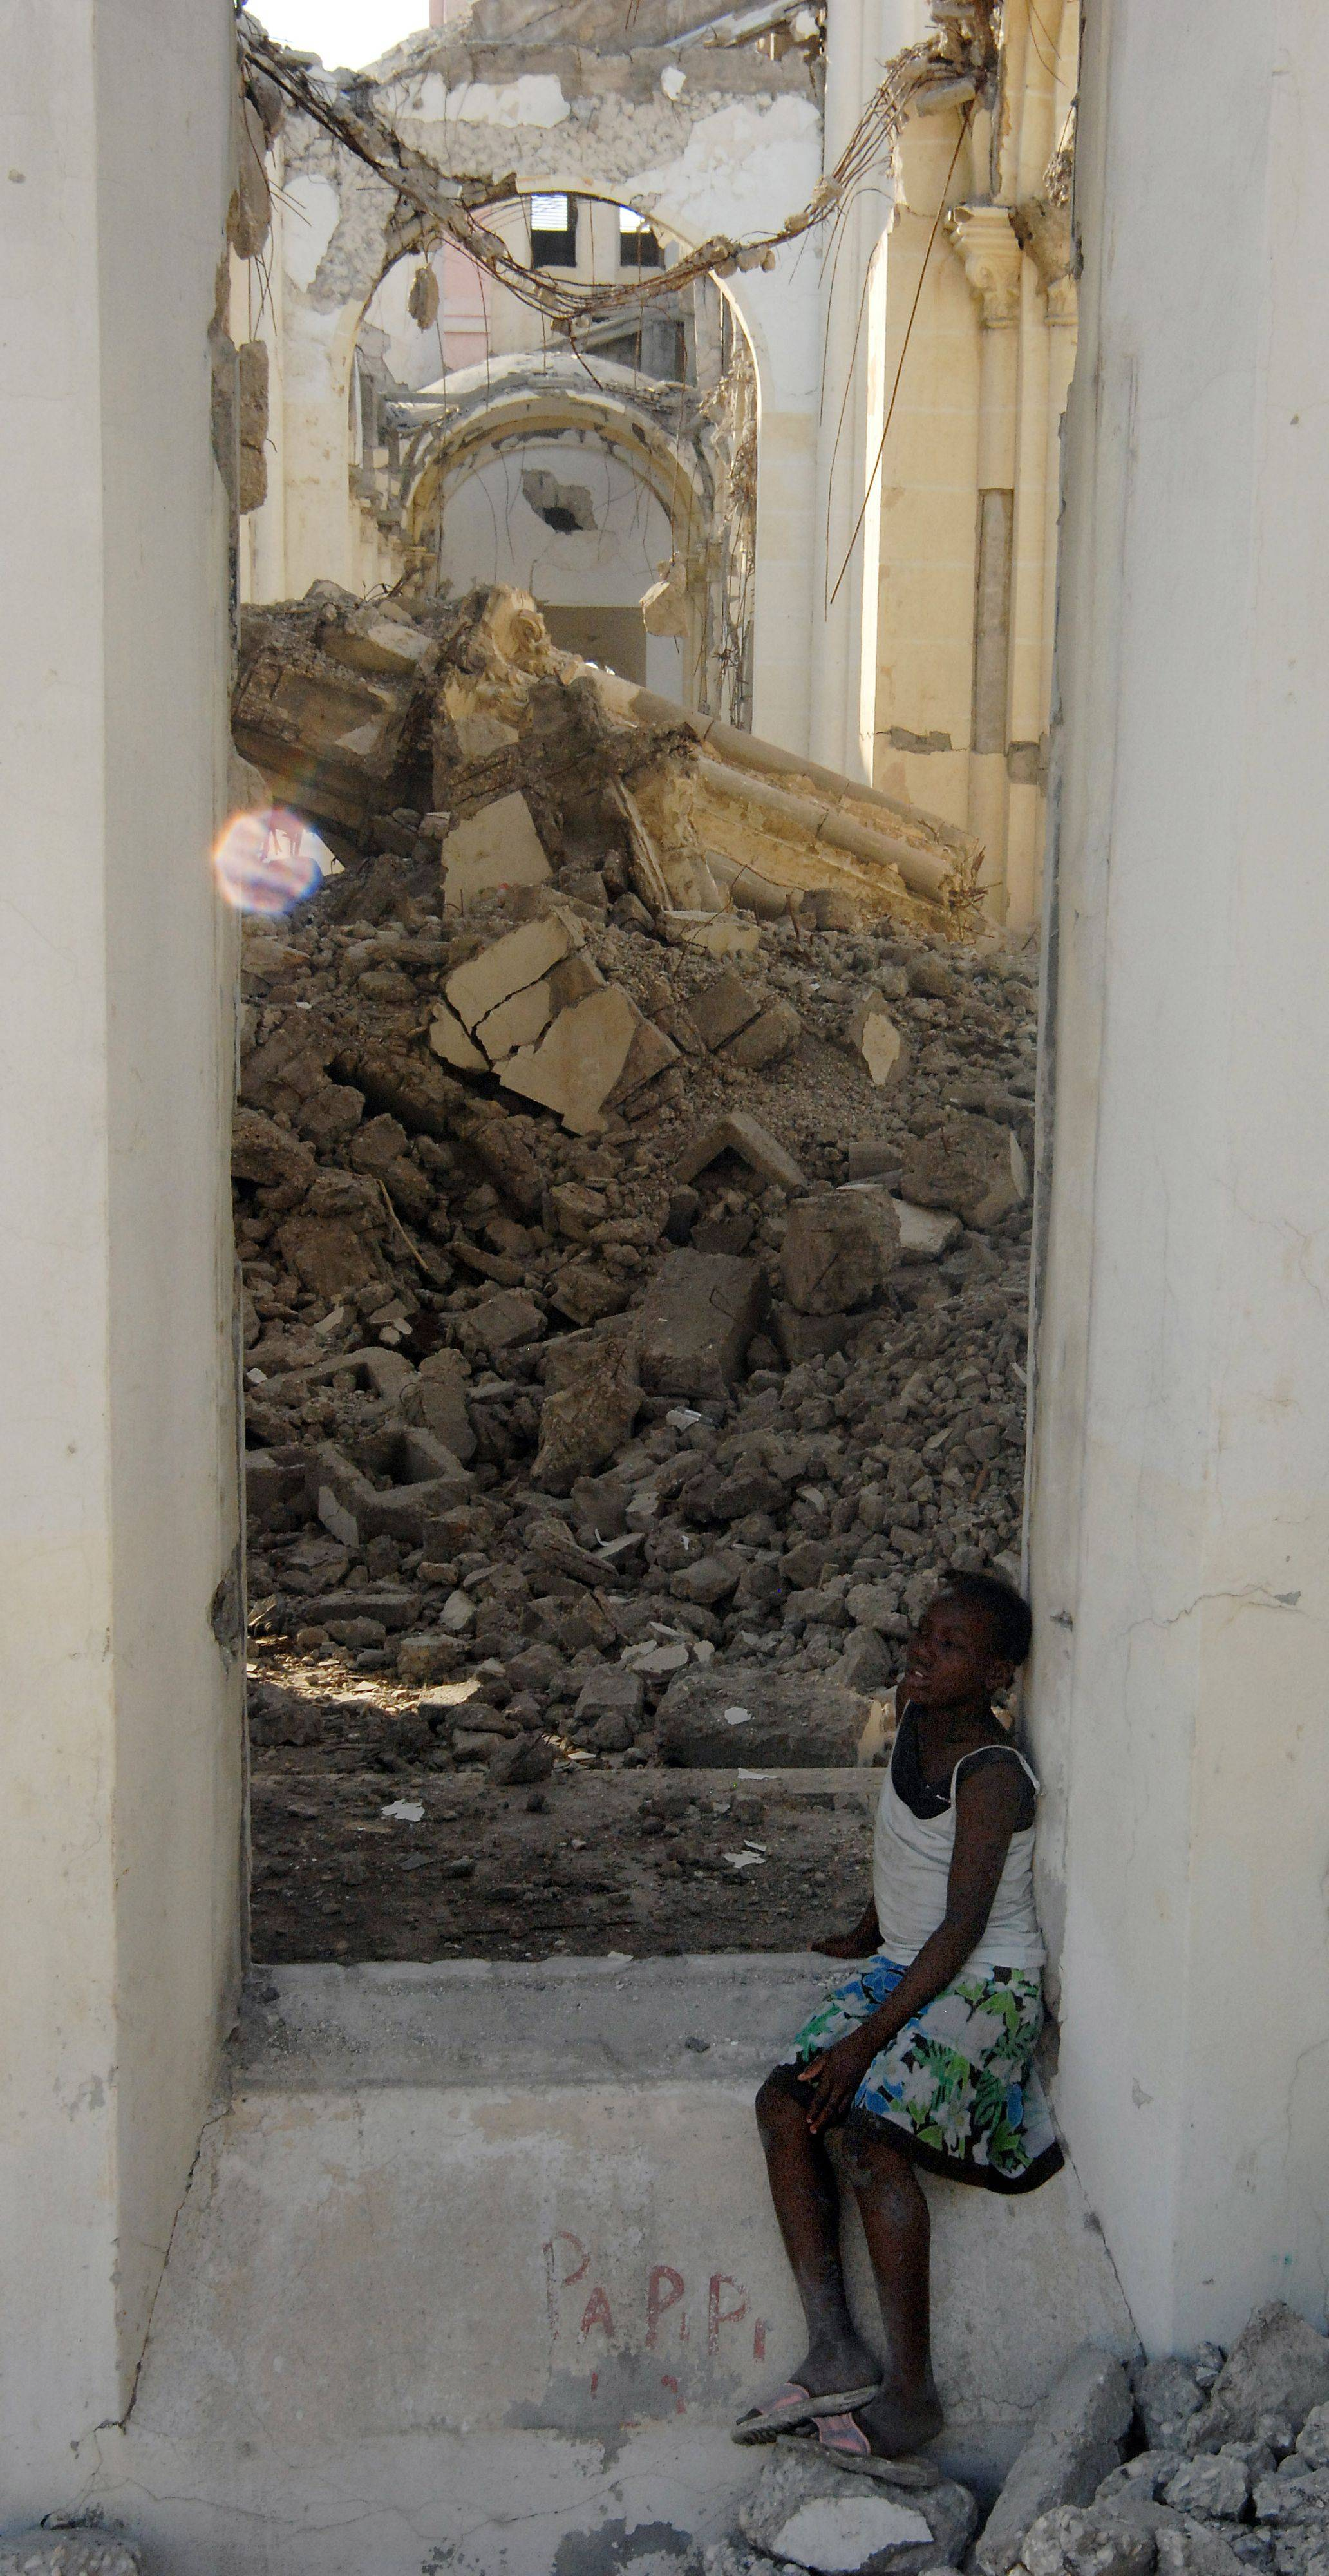 The Port-au-Prince Cathedral is now a place where kids play instead of praying.